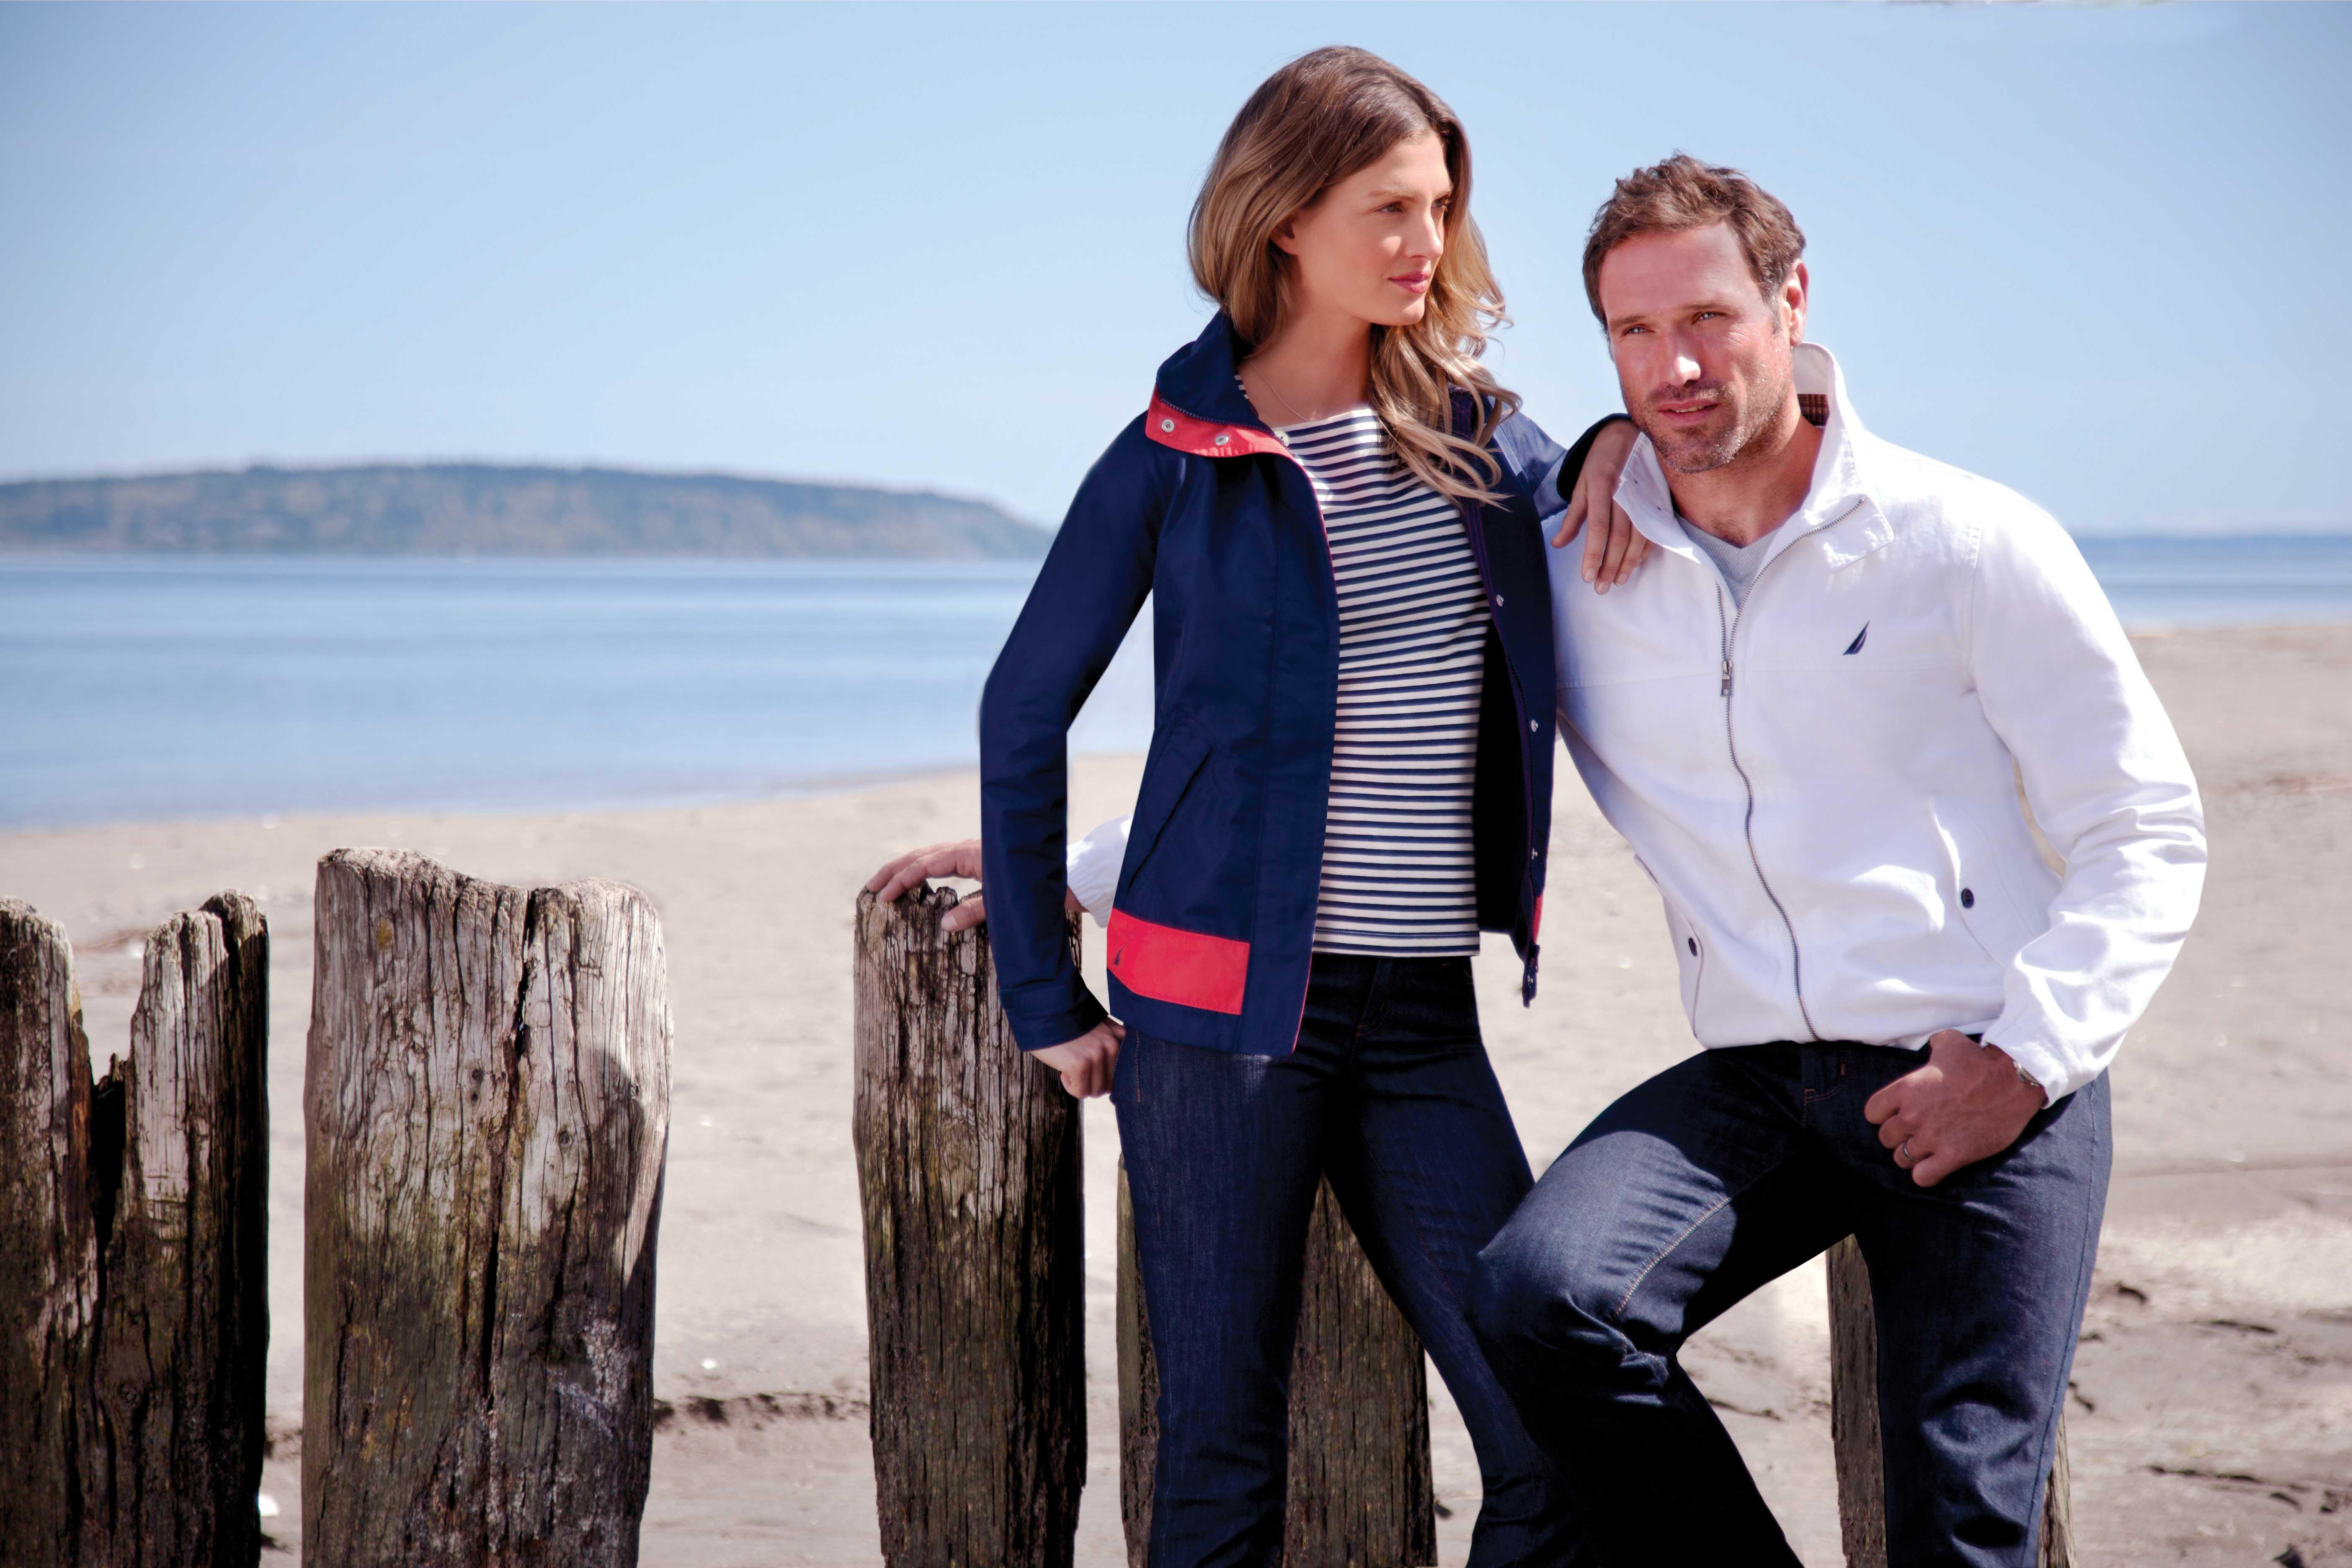 Extra 30% Off Sitewide Friends & Family Sale @ Nautica